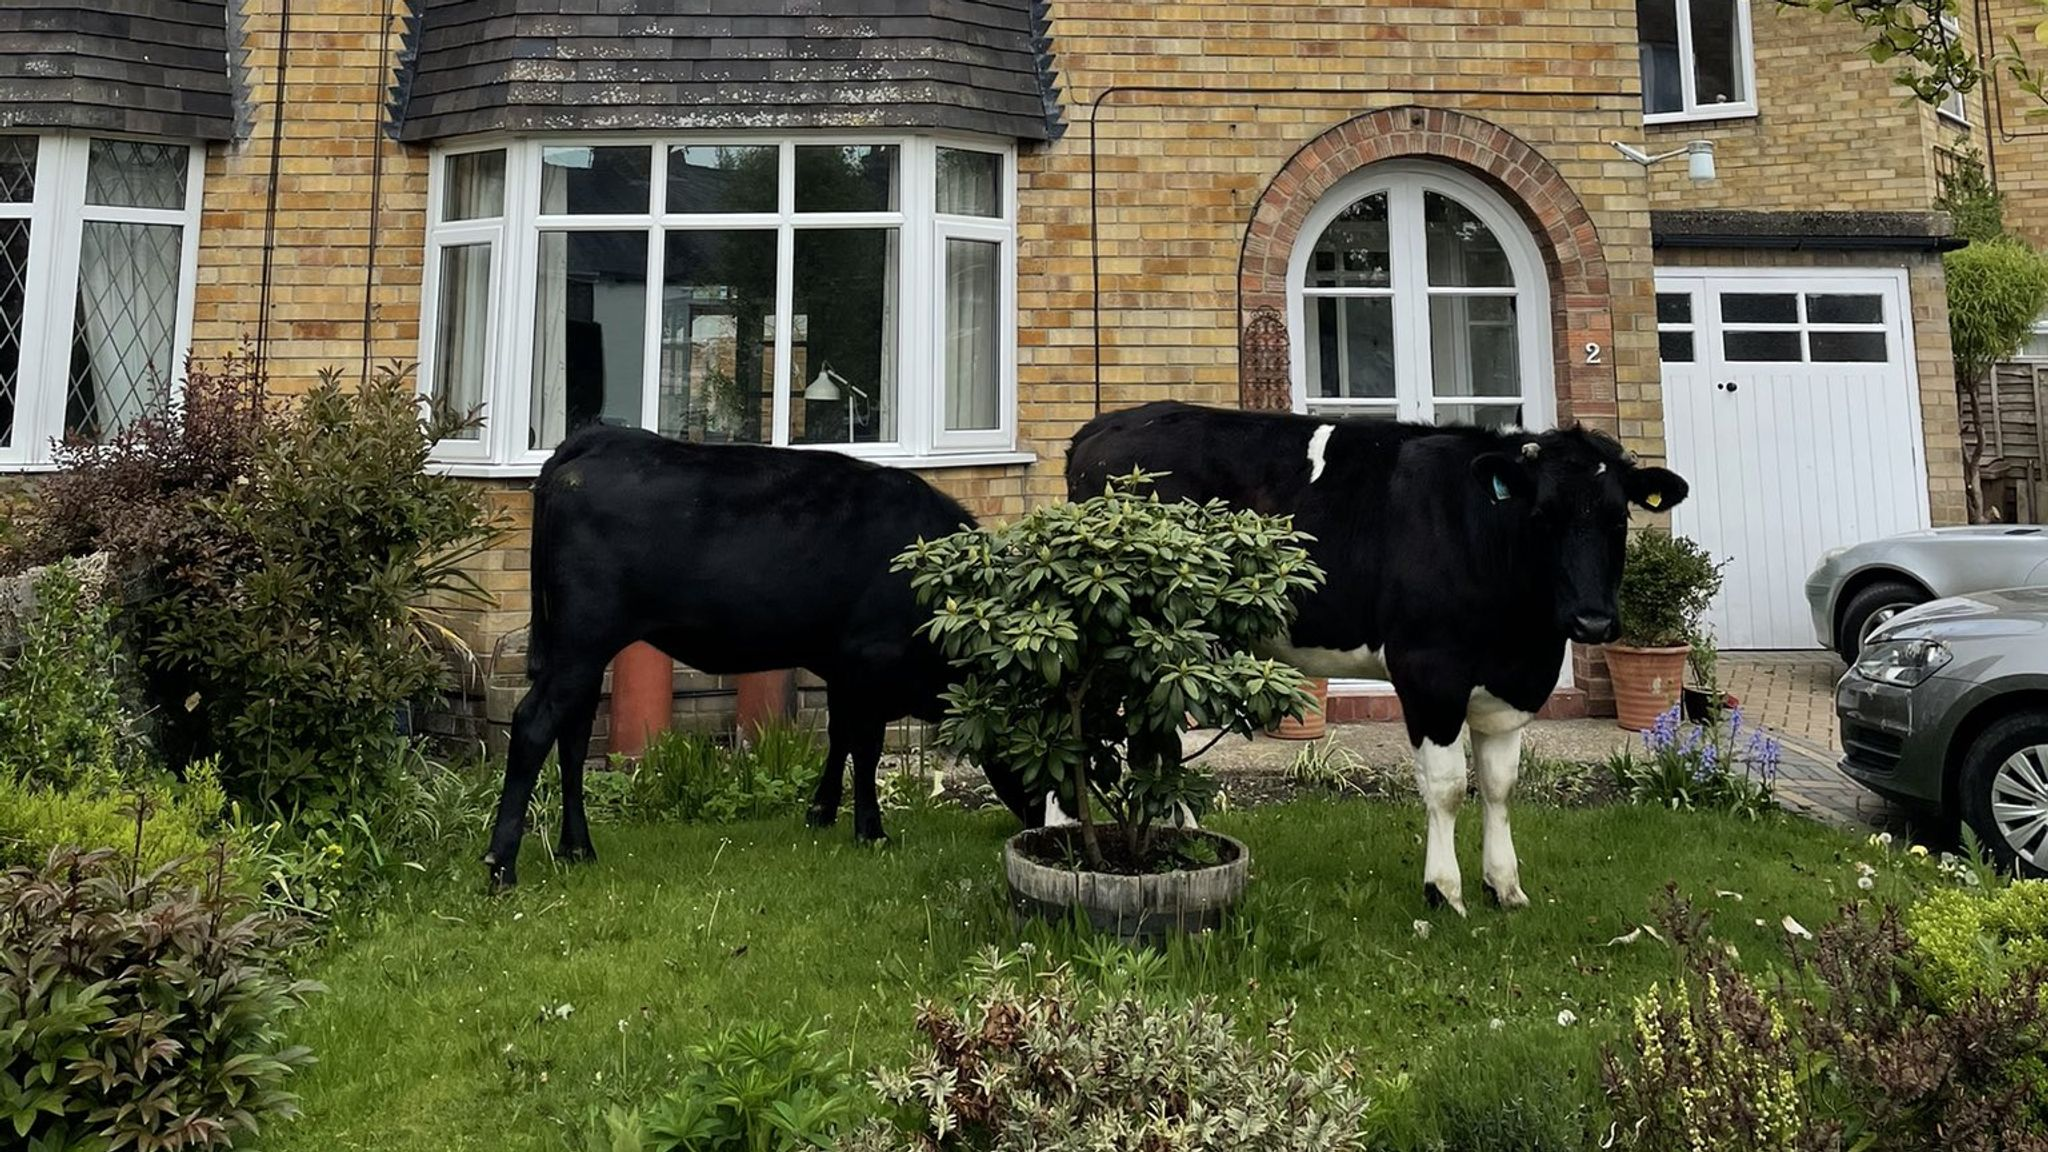 Yum: The cows were spotted helping themselves to grass in people's gardens